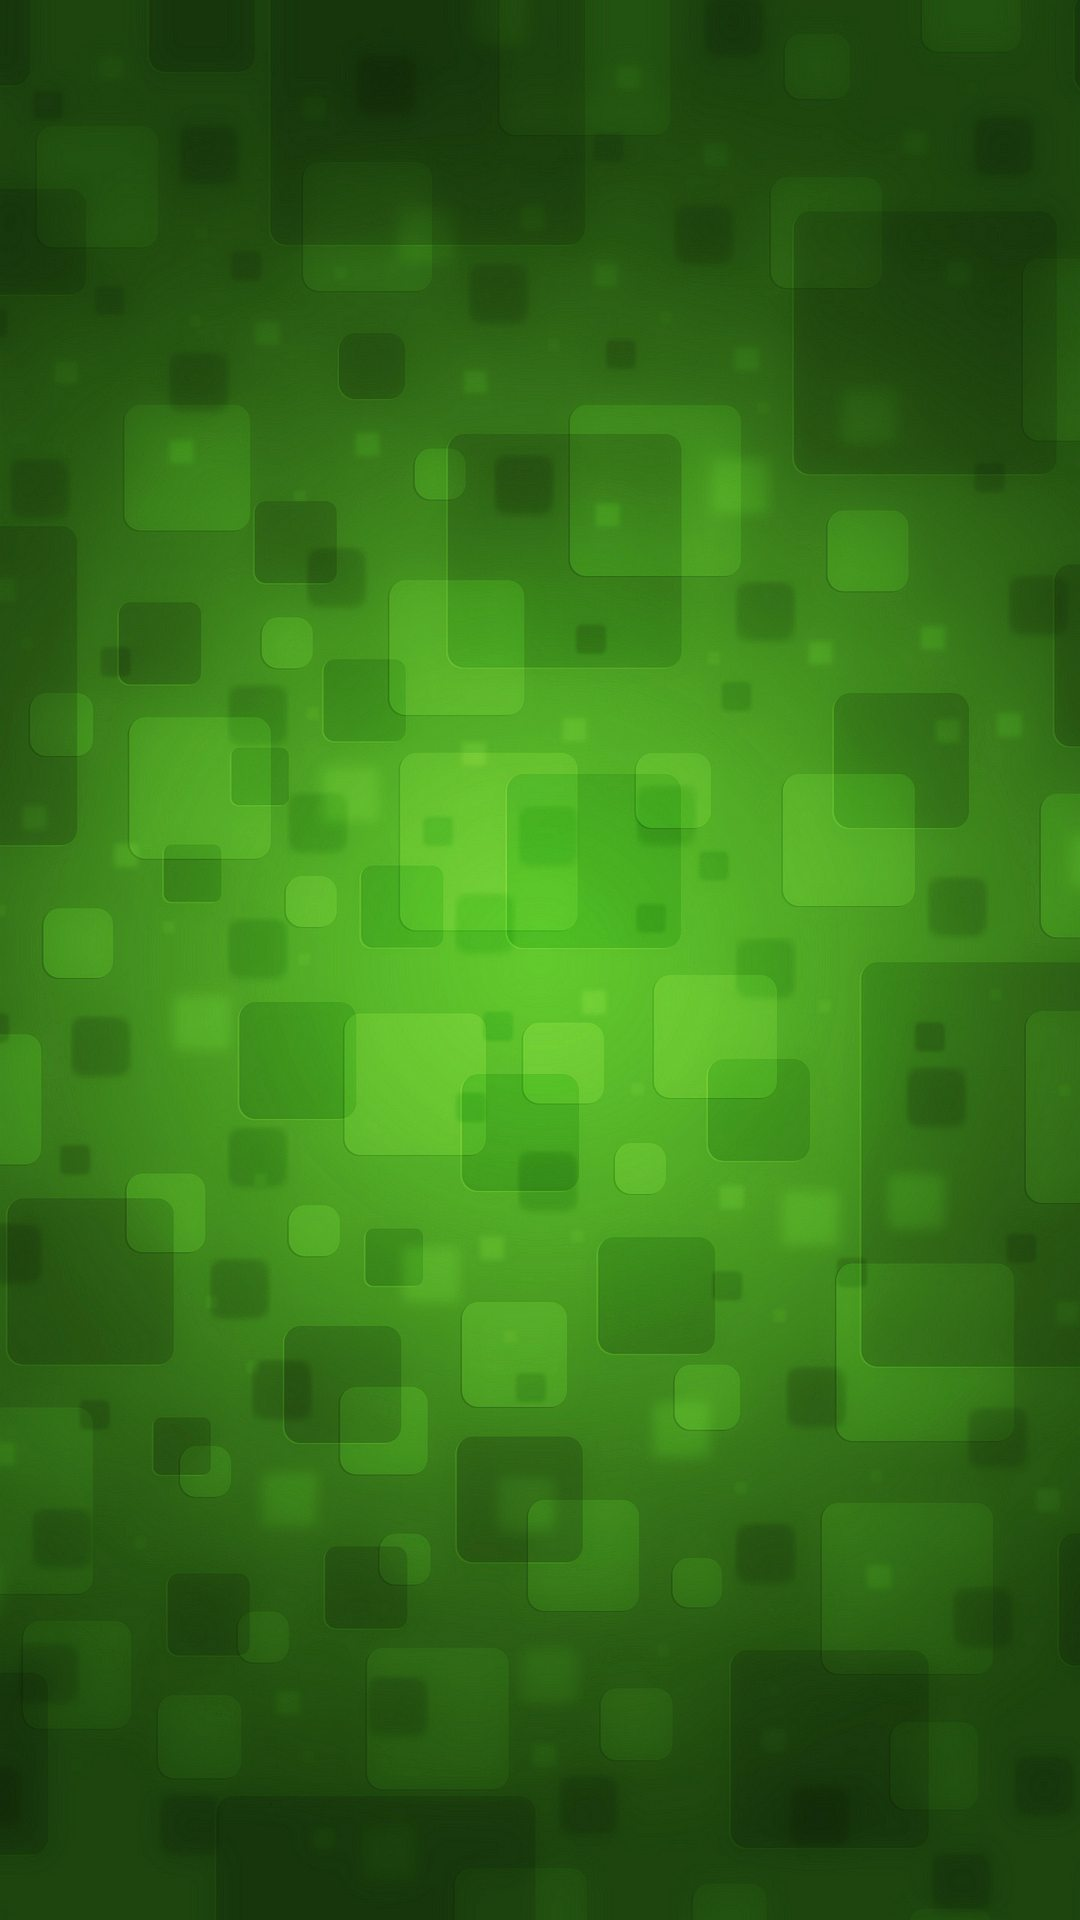 comz wallpaper full hd 1080 x 1920 smartphone green abstractphp 1080x1920